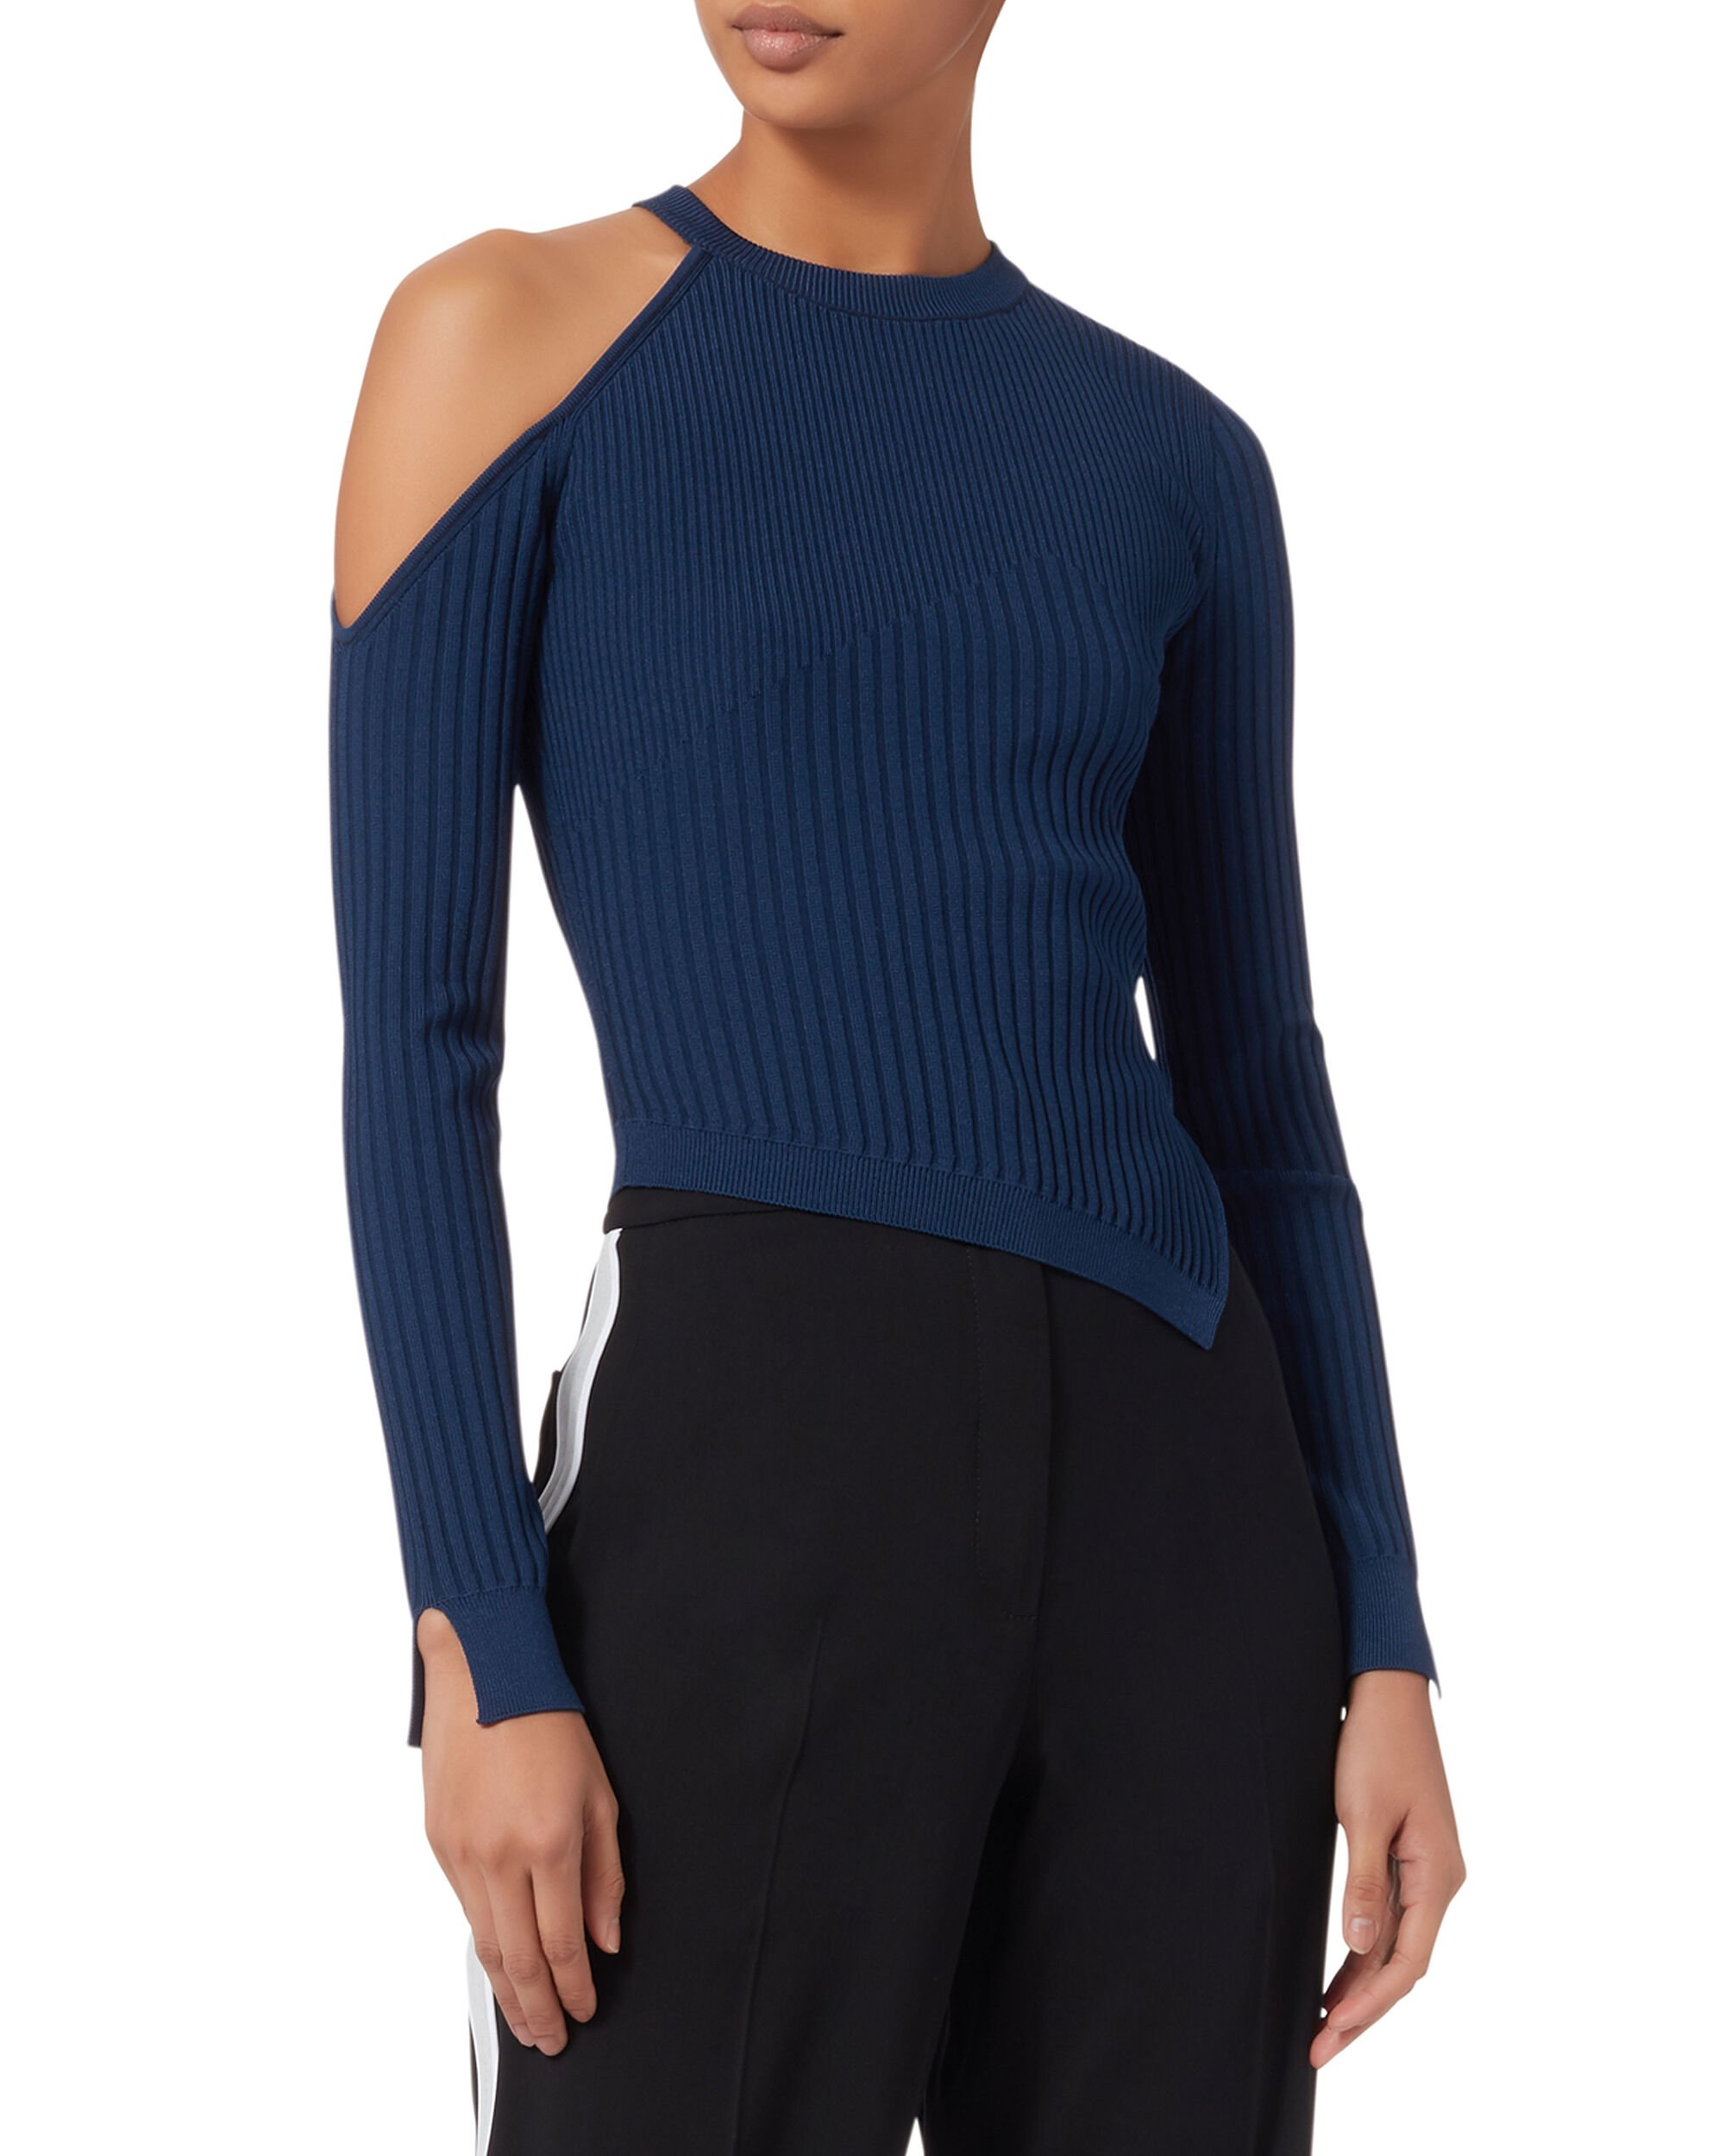 Cold Shoulder Asymmetrical Navy Sweater, NAVY, hi-res